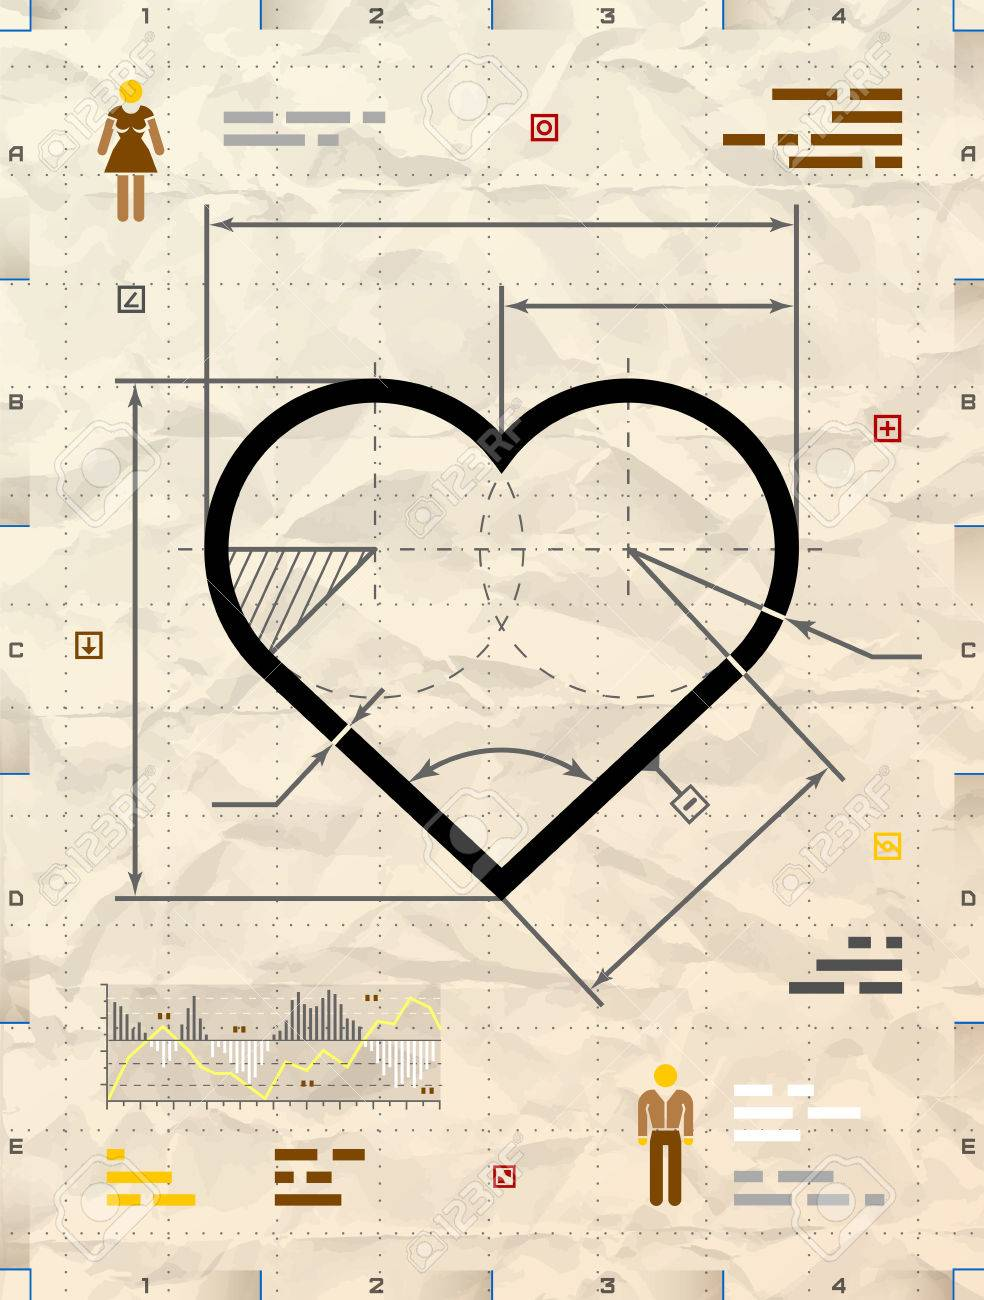 Heart sign as technical blueprint drawing drafting of heart heart sign as technical blueprint drawing drafting of heart symbol on crumpled paper qualitative malvernweather Gallery